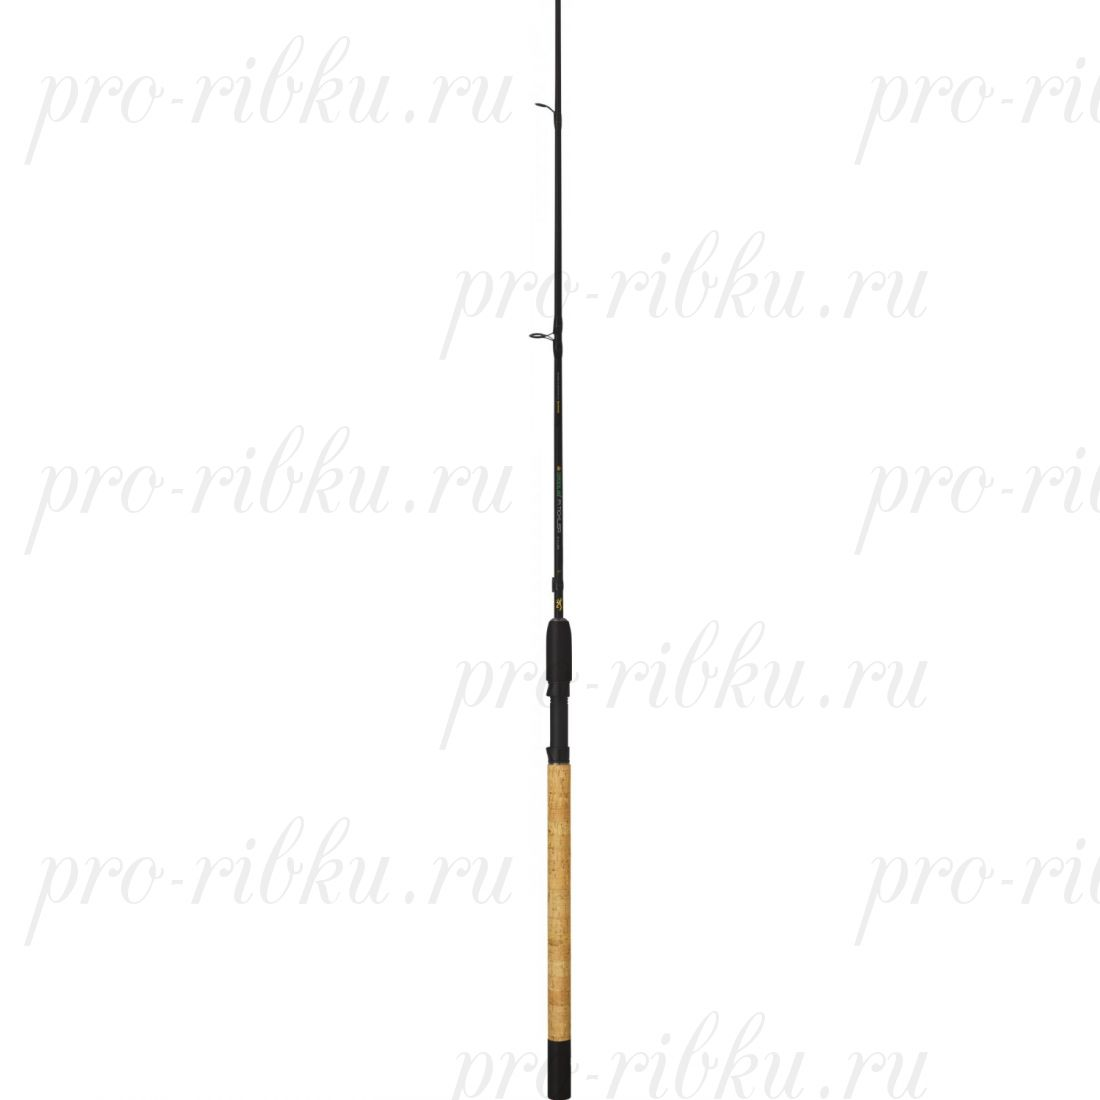 Удилище фидерное Browning Commercial King Carp Tickler 2,20m 35gr/2,4lbs